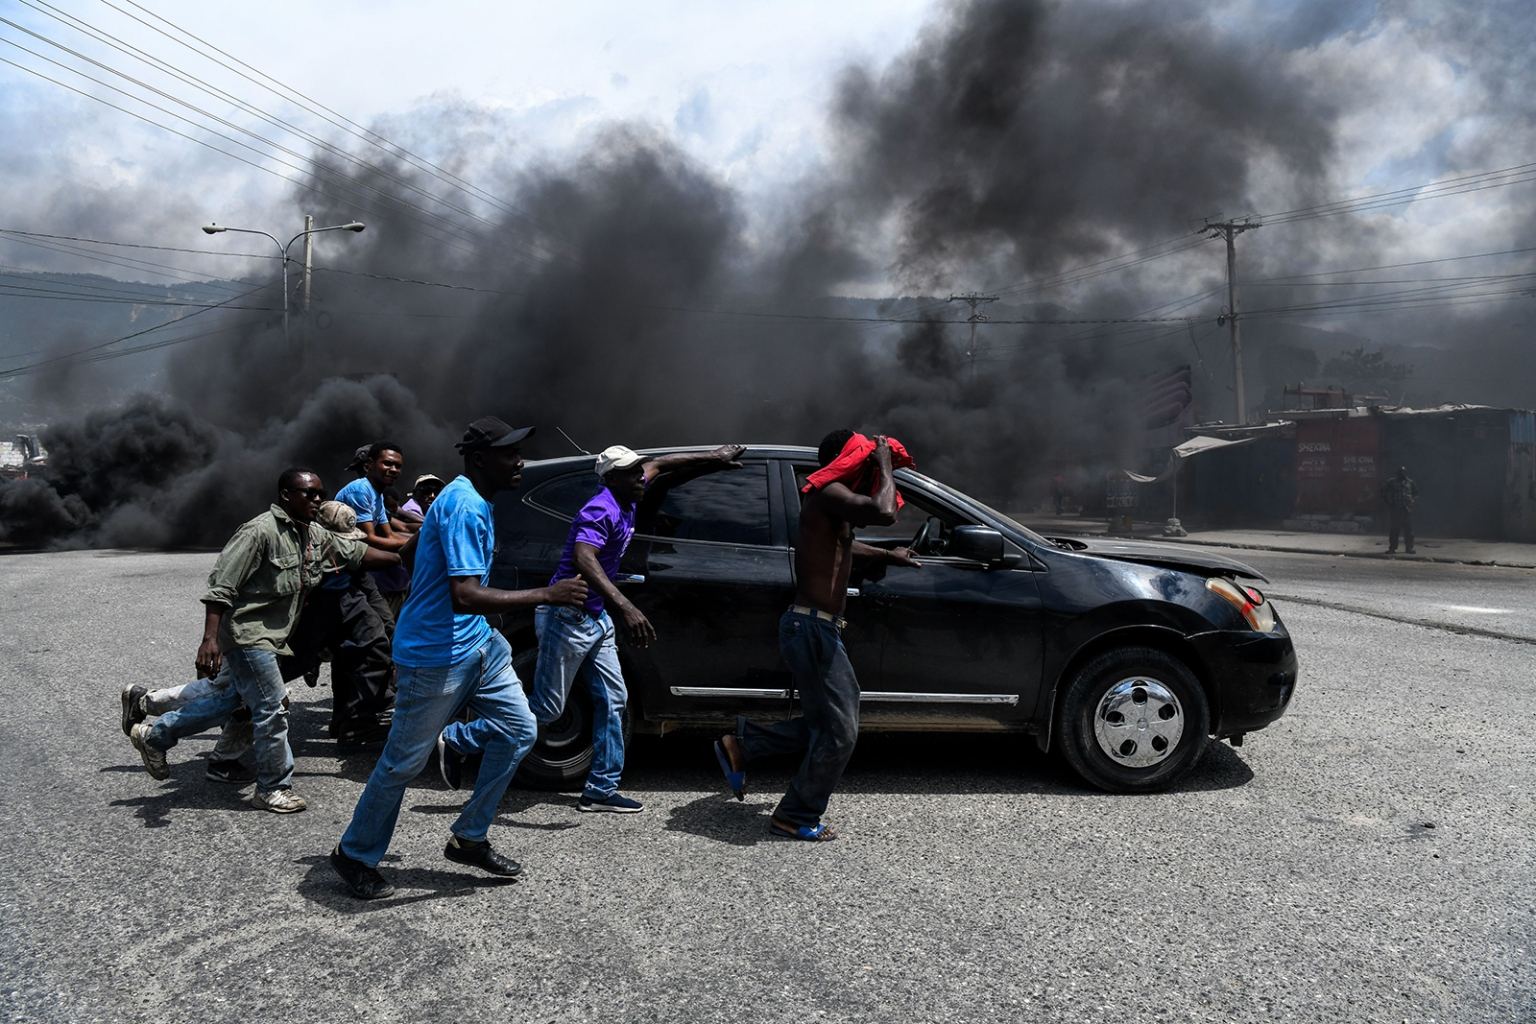 People drag a car from the street as demonstrators burn tires during a protest against the ruling government in Port-au-Prince on June 13. CHANDAN KHANNA/AFP/Getty Images